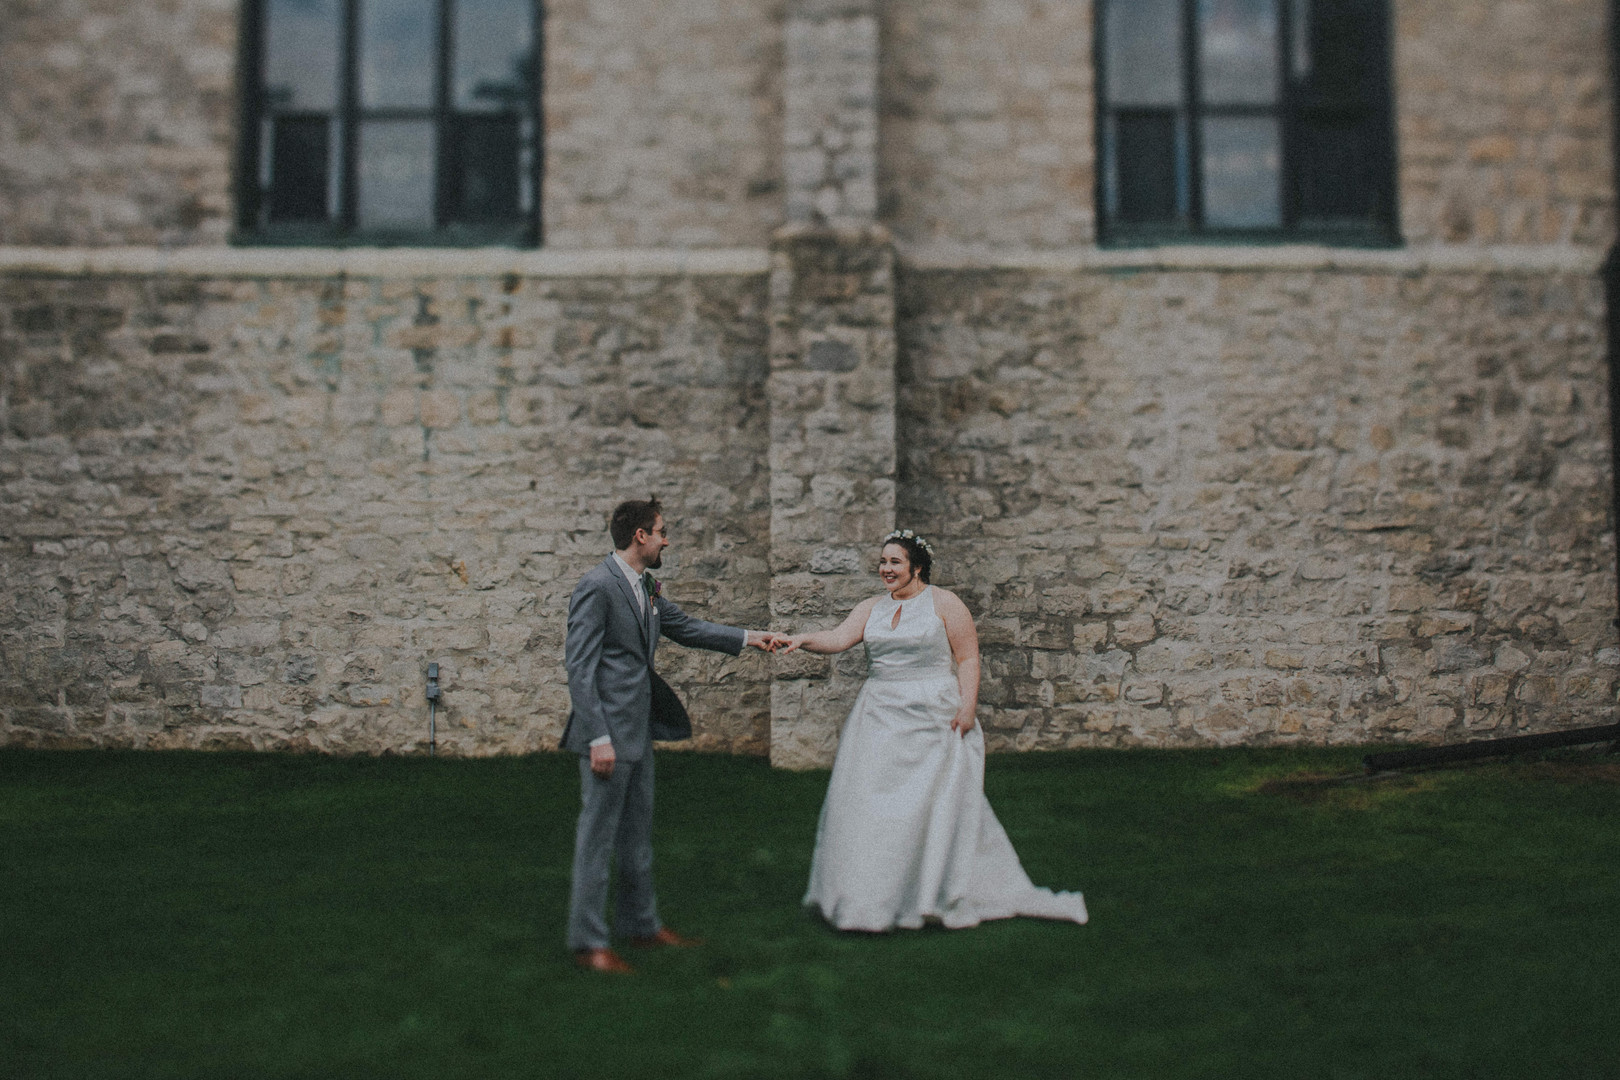 A groom and bride reach their hands towards each other in front of Holy Name of Jesus Catholic Church - Mary Petrie in Oshkosh Wisconsin